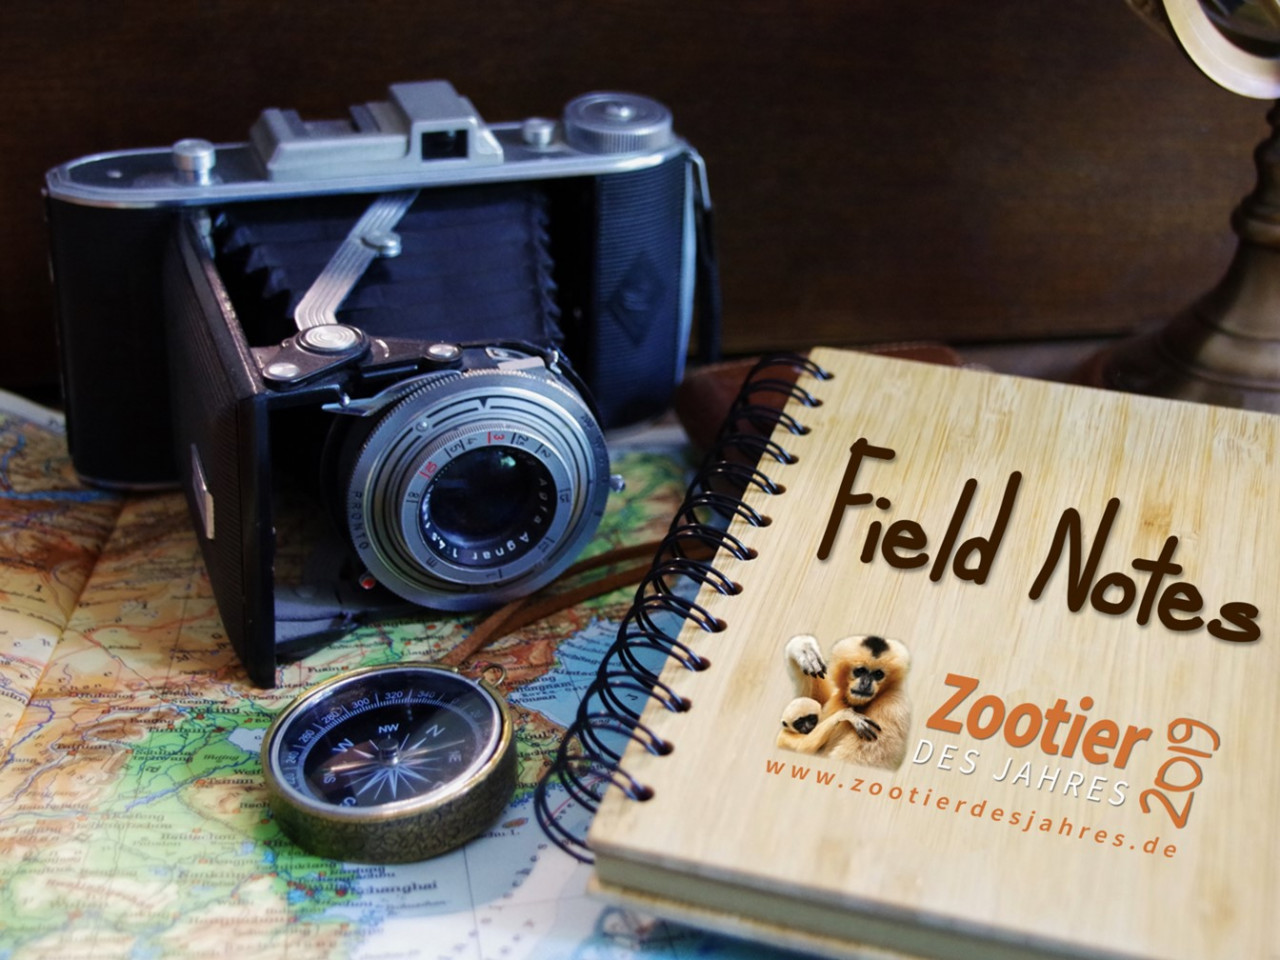 ZdJ 2019 - Fieldnotes: Project Anoulak